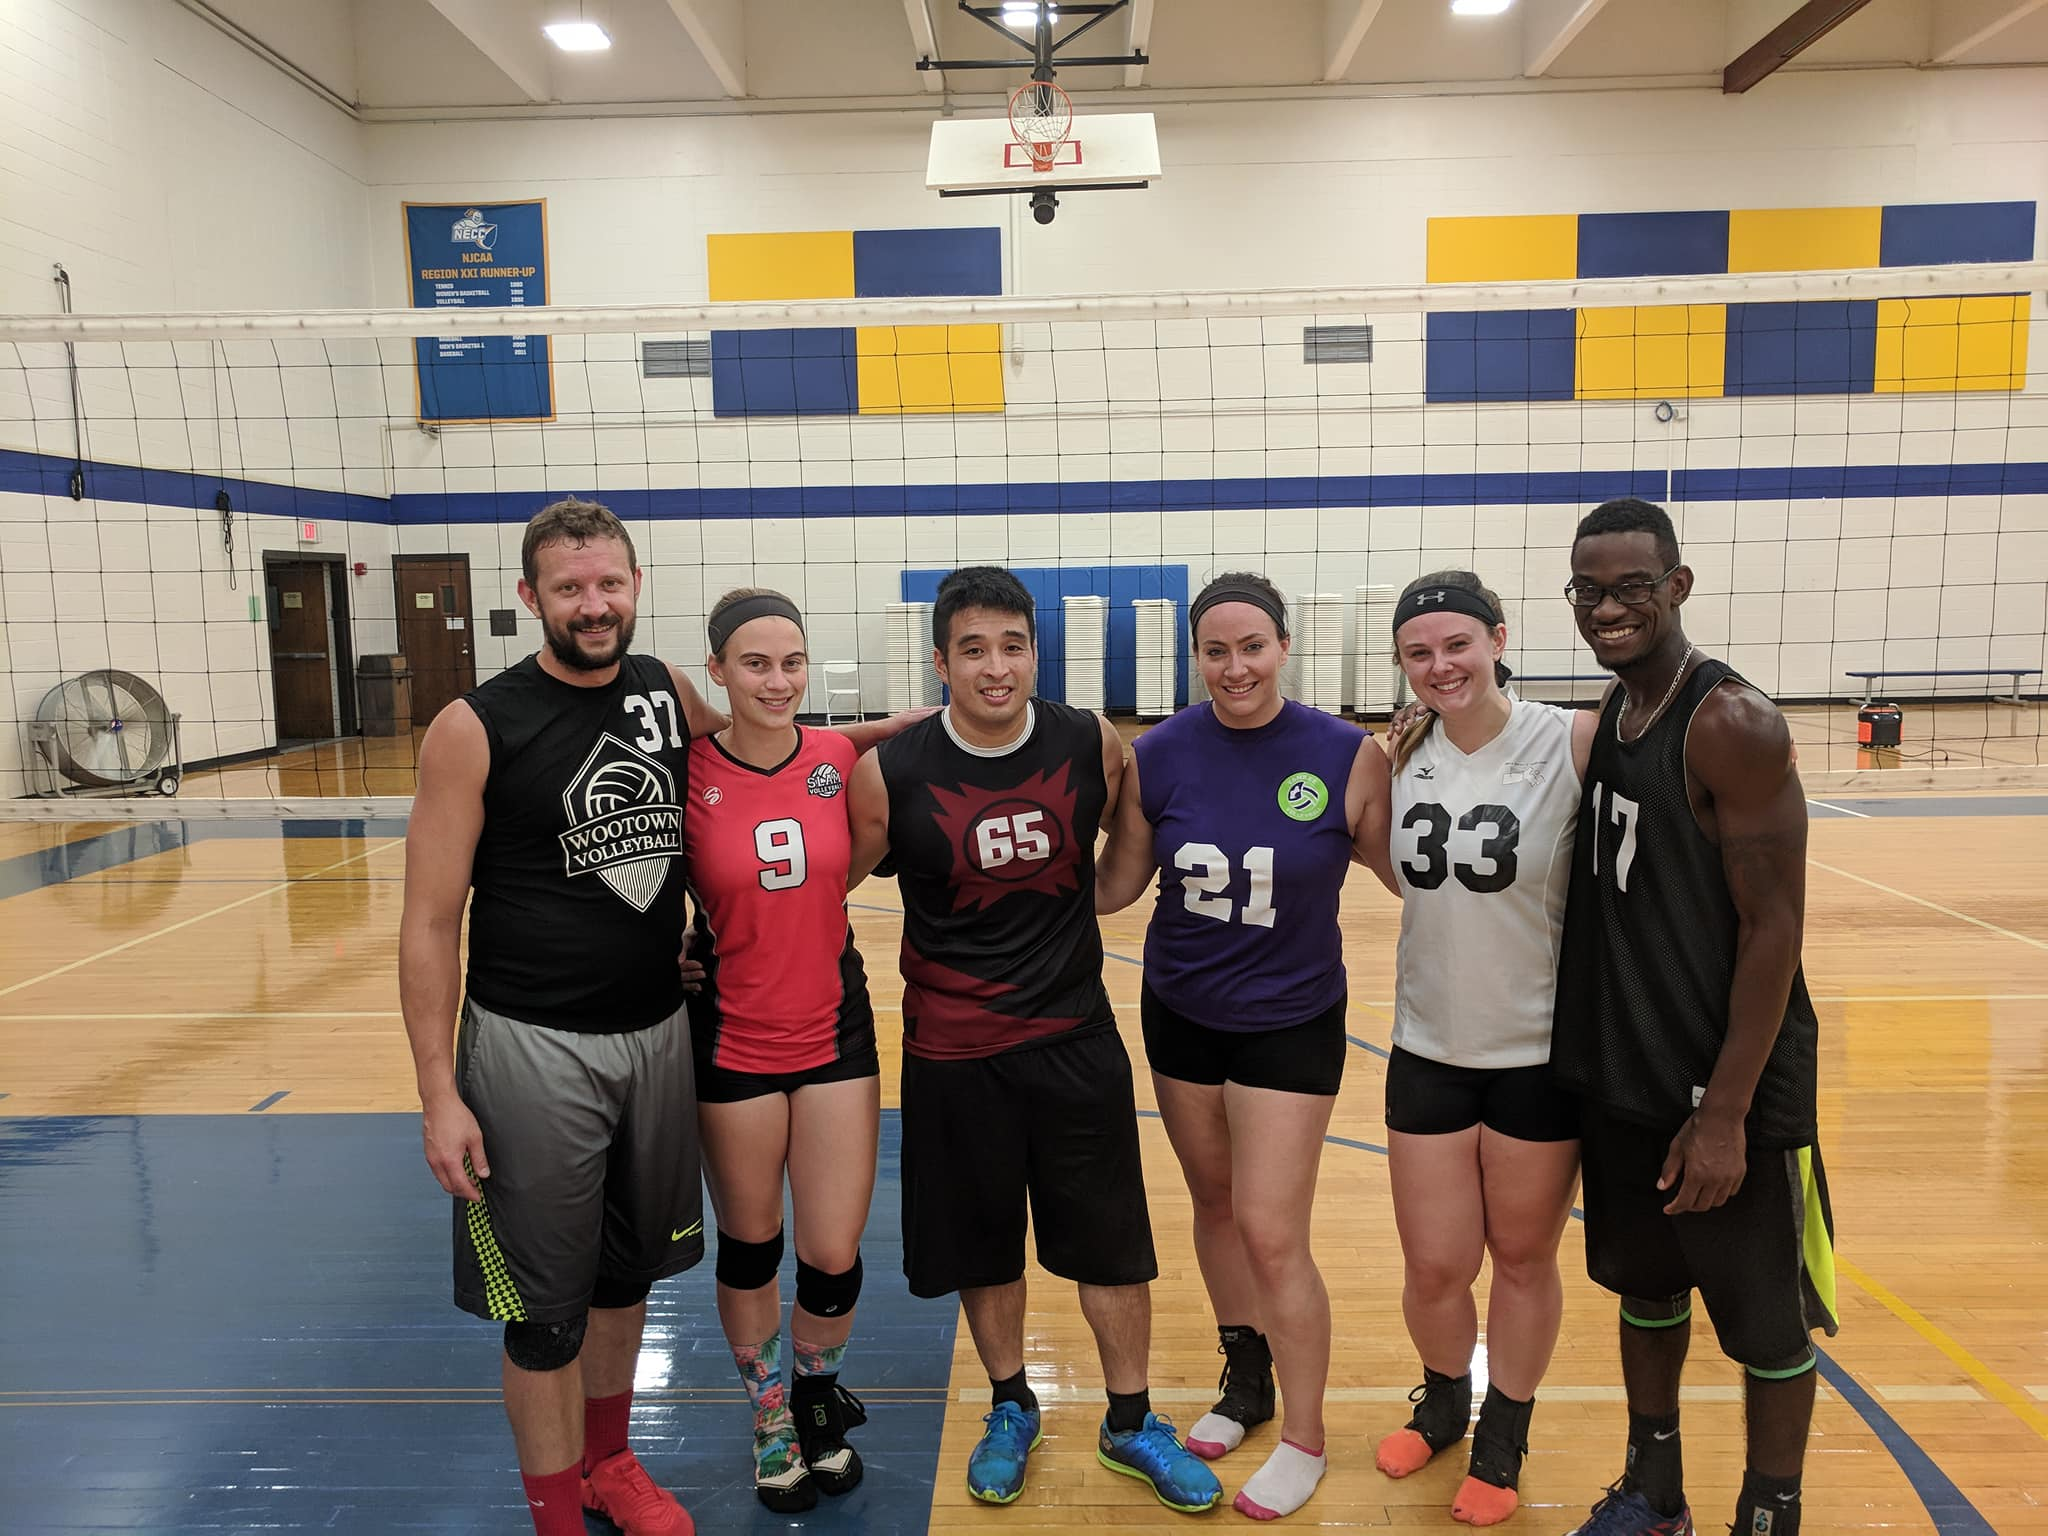 9/22/2018 RCO C+ Champions - Wootown Thunder Chickens!